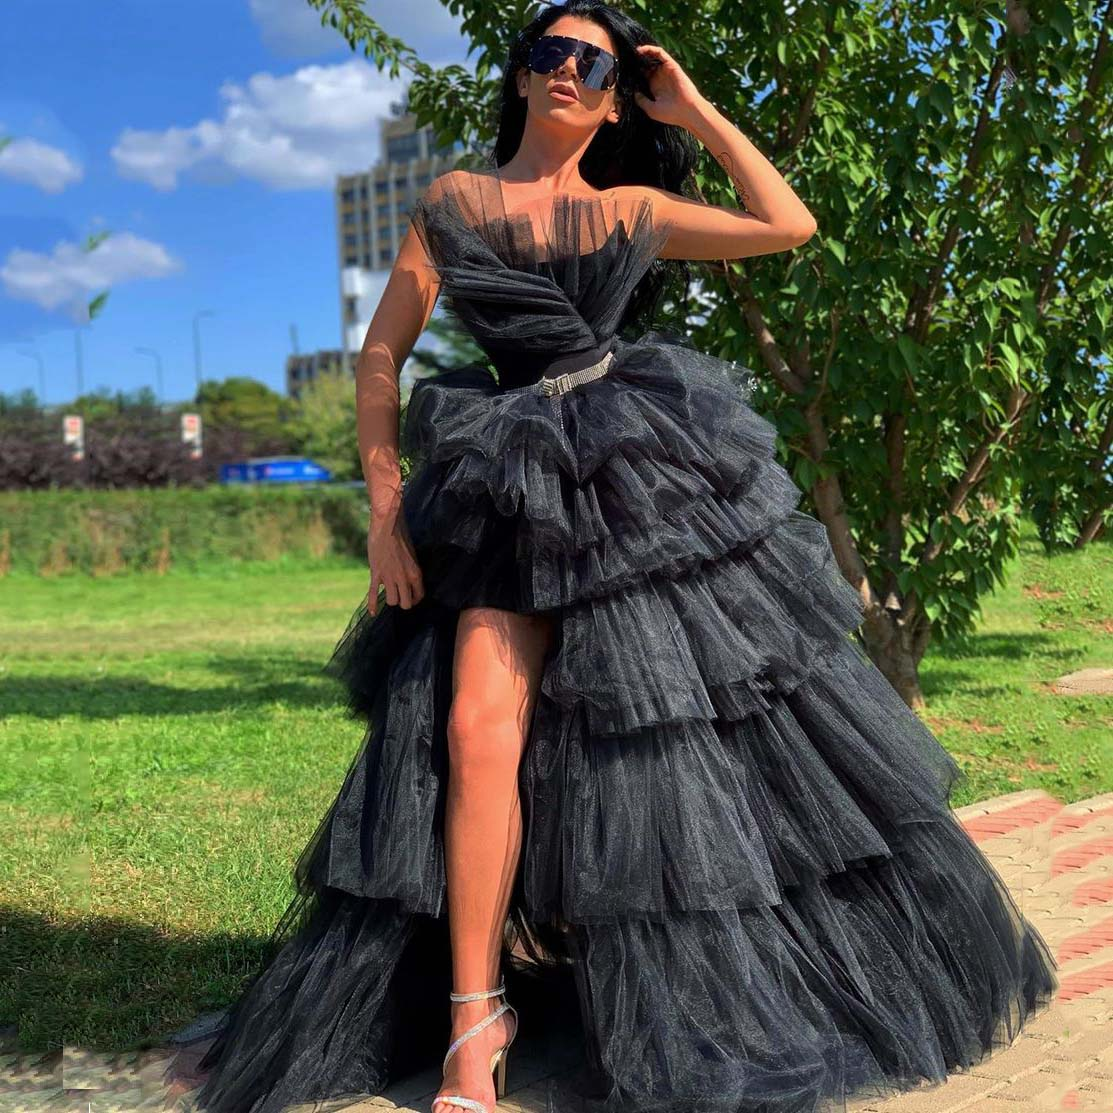 Black Luxury Long Prom Dresses Strapless Layered Ruffles Tulle Split Ball Gown Women Formal Evening Party Cocktail Elegant Gowns amazing 2020 new prom dresses ball gown tiered ruffled tulle purple unique evening dress strapless celebrity pageant gowns